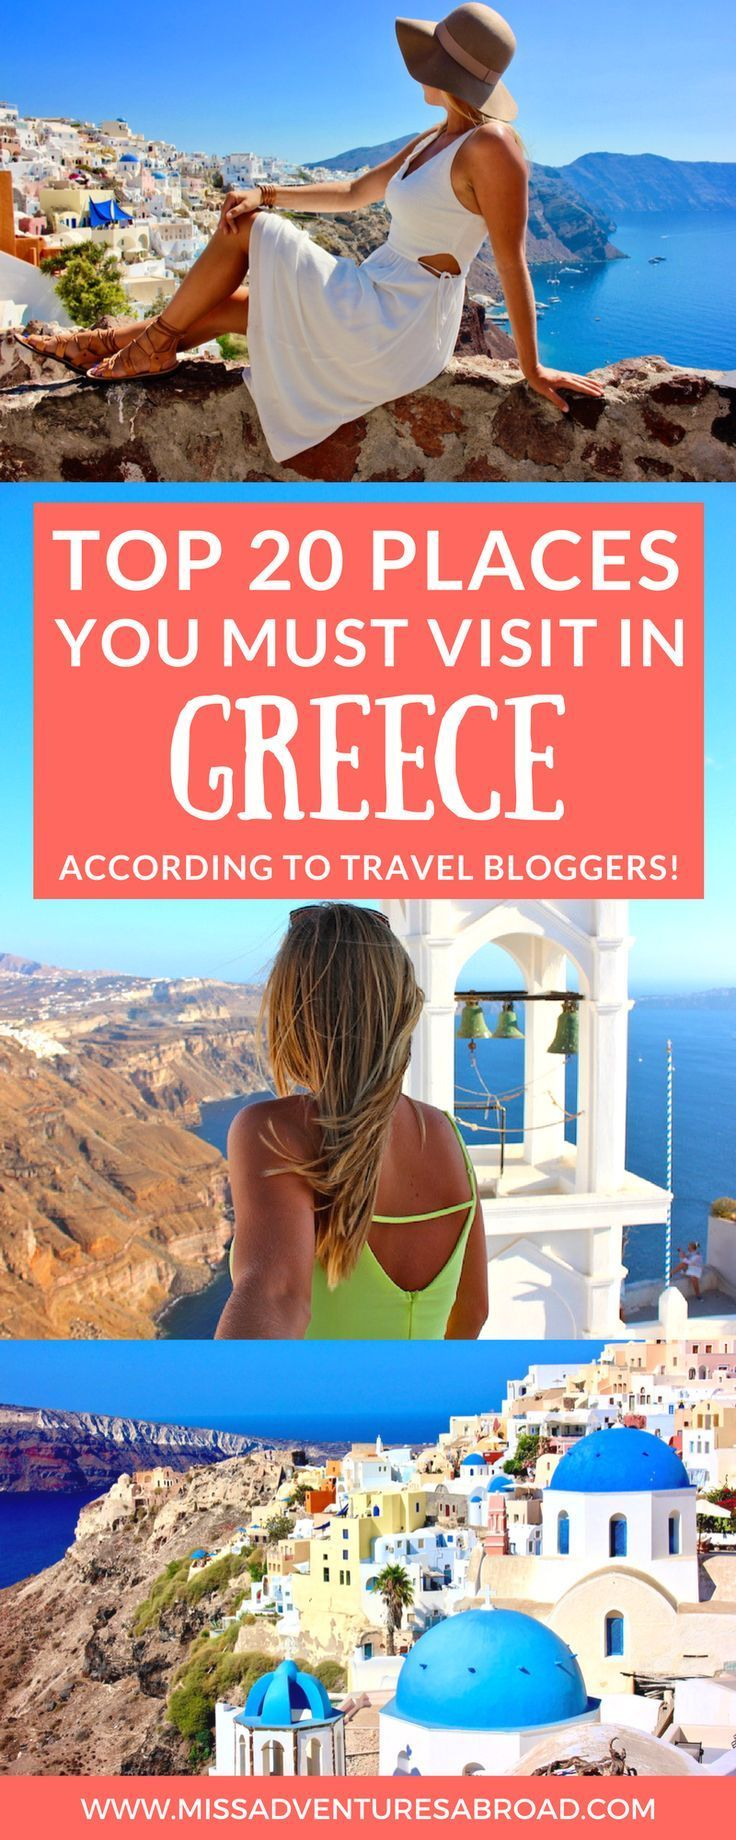 20 Stunning Destinations in Greece Travel Bloggers Love · Planning a trip to Greece but are unsure of where to go? There are so many places to travel to in Greece that it can be difficult to choose! This list includes travel bloggers' top 20 places to visit in Greece! Learn about popular island getaways like Santorini, Mykonos, Crete, Corfu, and Rhodes, as well as mainland destinations like Athens and Thessaloniki. You'll also find plenty of off the beaten trail suggestions! Happy travels!